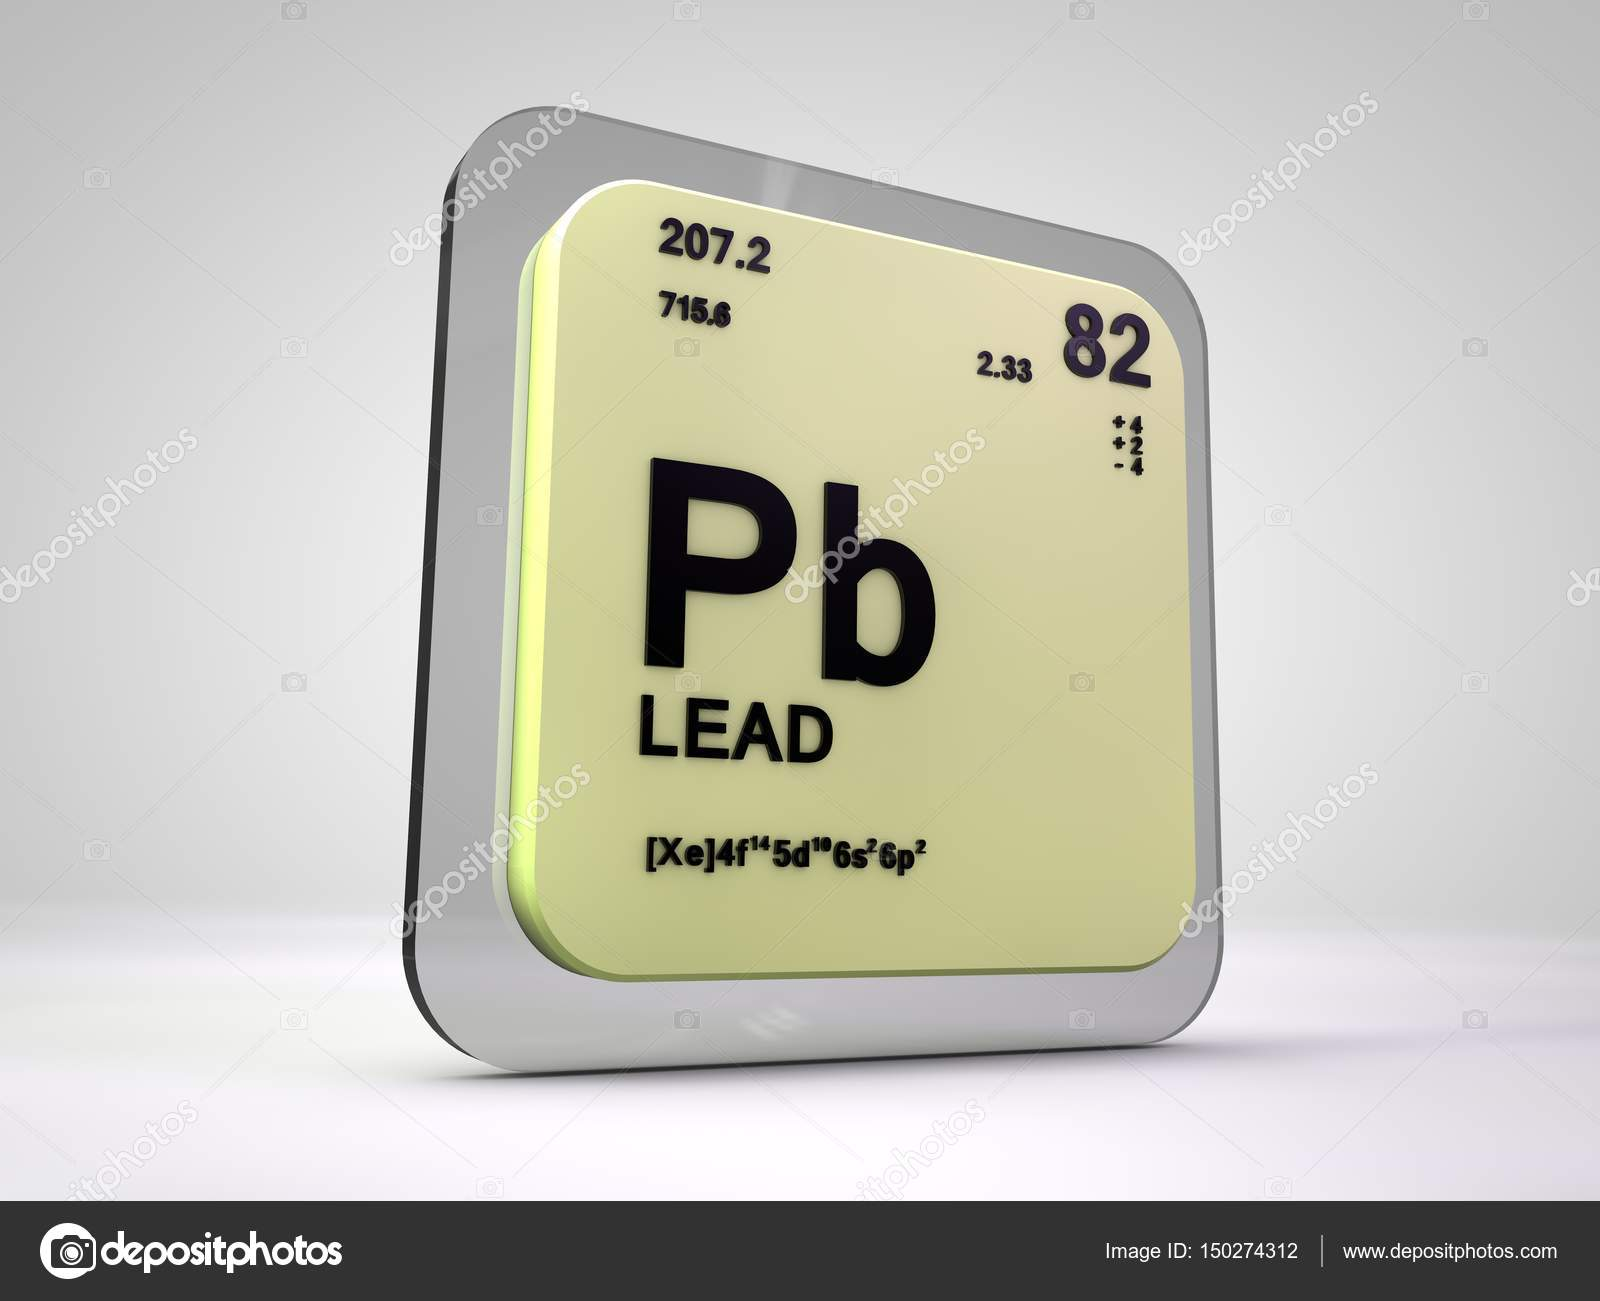 Lead pd chemical element periodic table 3d render stock lead pd chemical element periodic table 3d render photo by viking75 urtaz Images